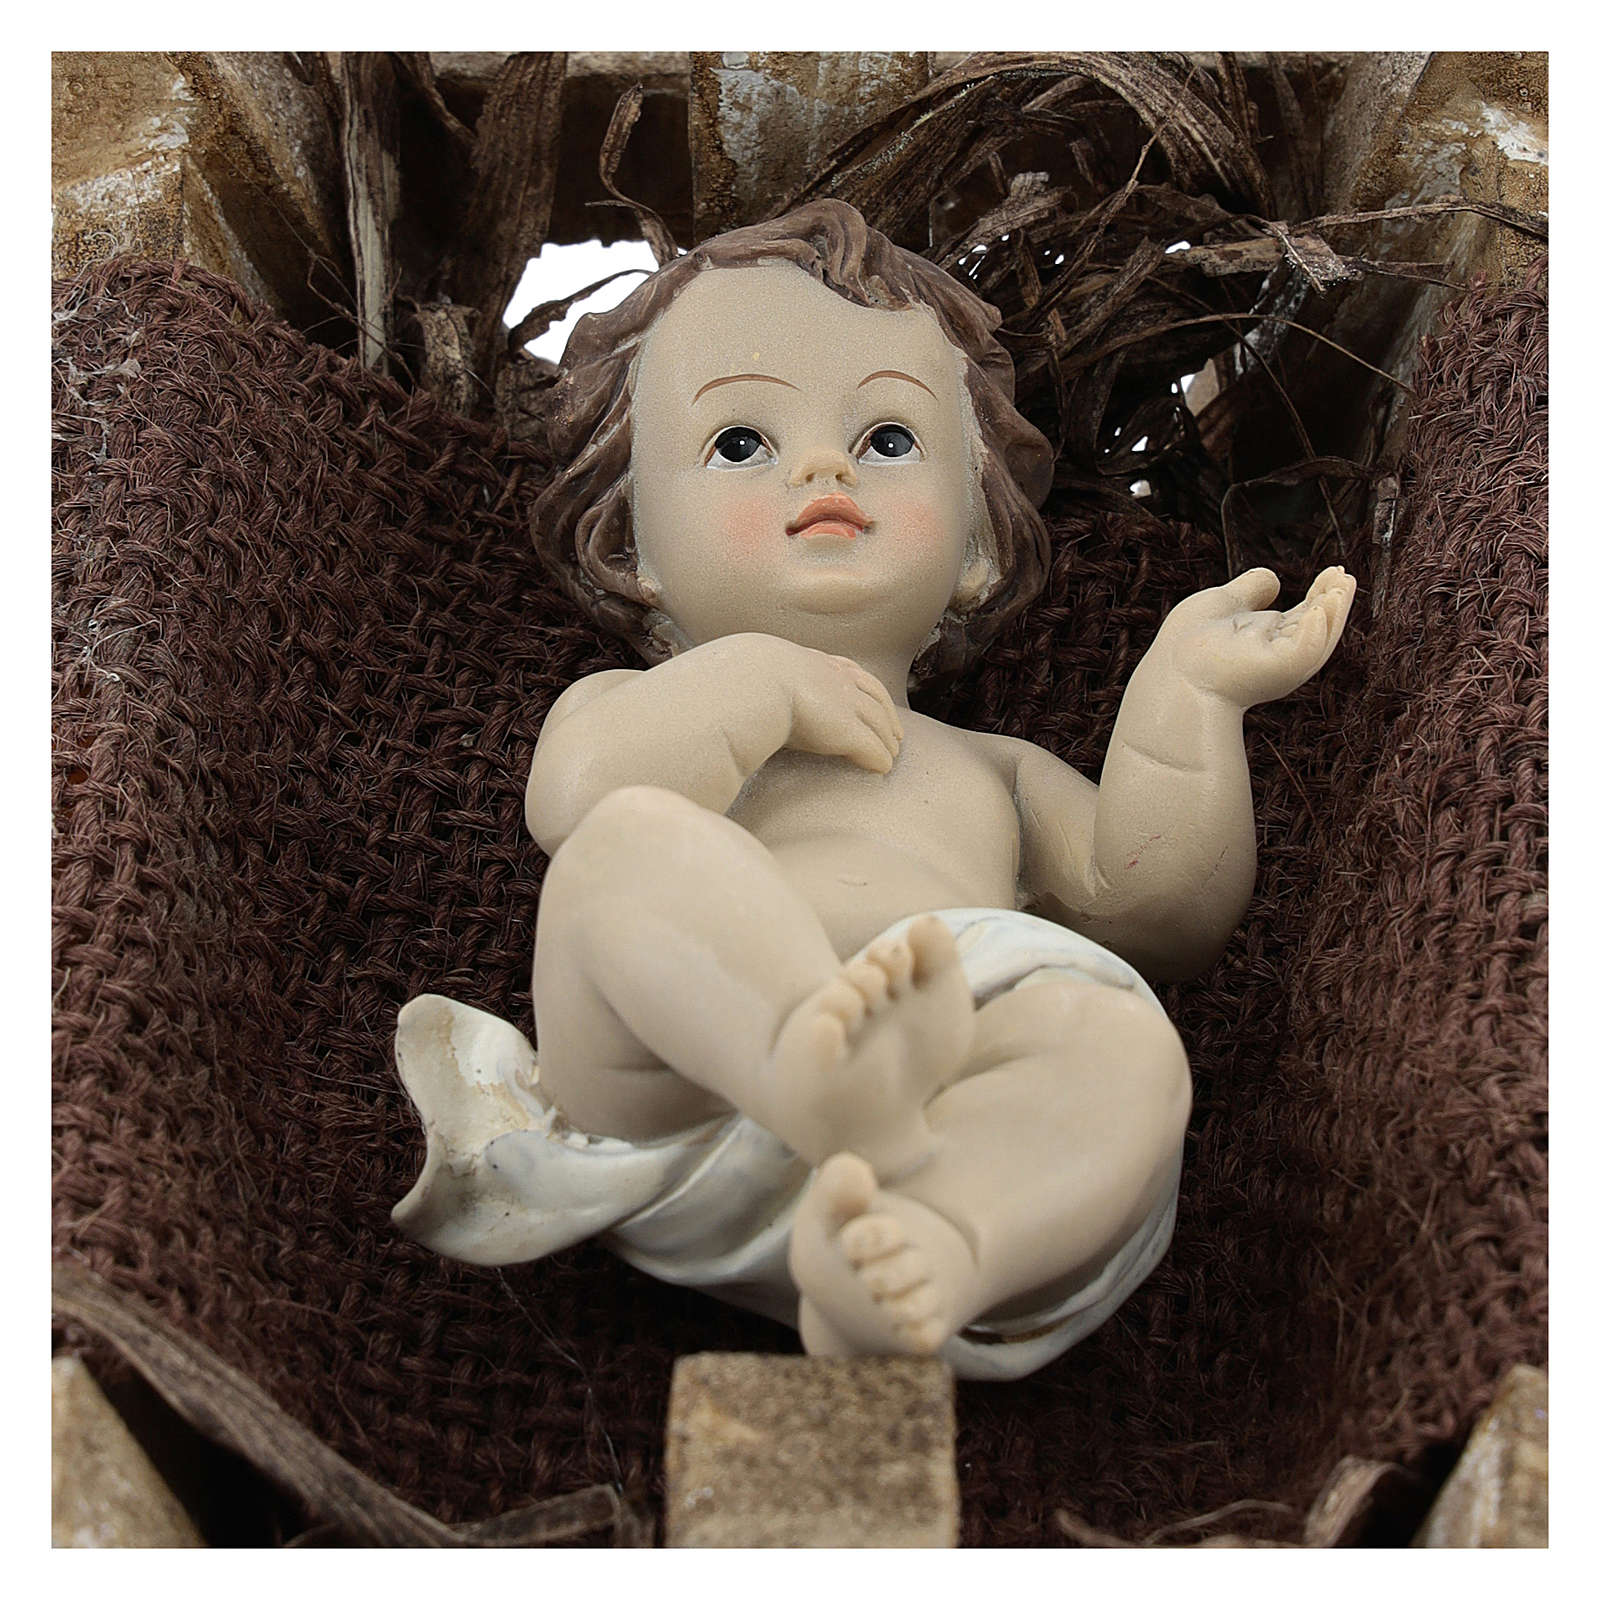 Baby Jesus in wood manger, resin 16 cm (real h) 3